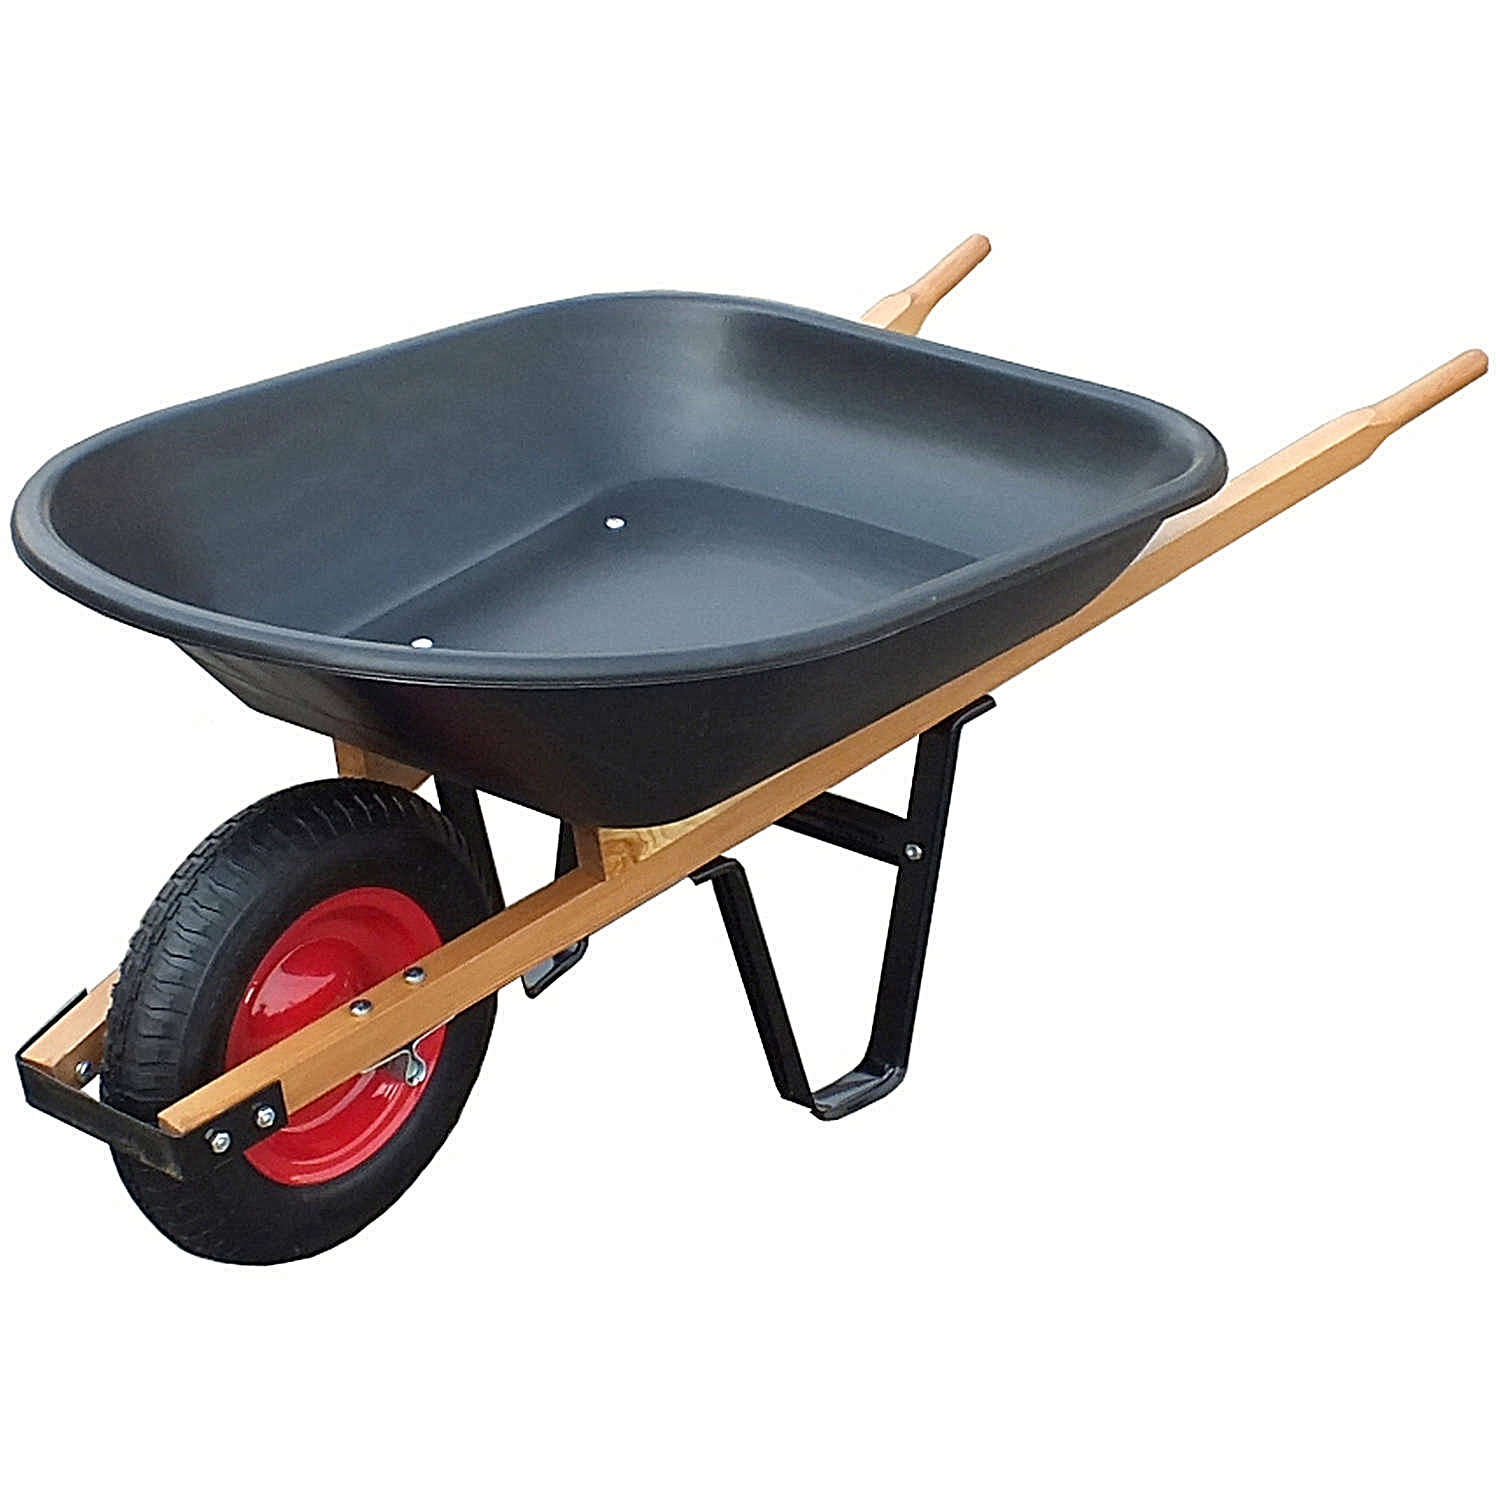 Yard Lawn Garden Cart wheelbarrow, barrow, pushcart, Resistant Weel pallet truck